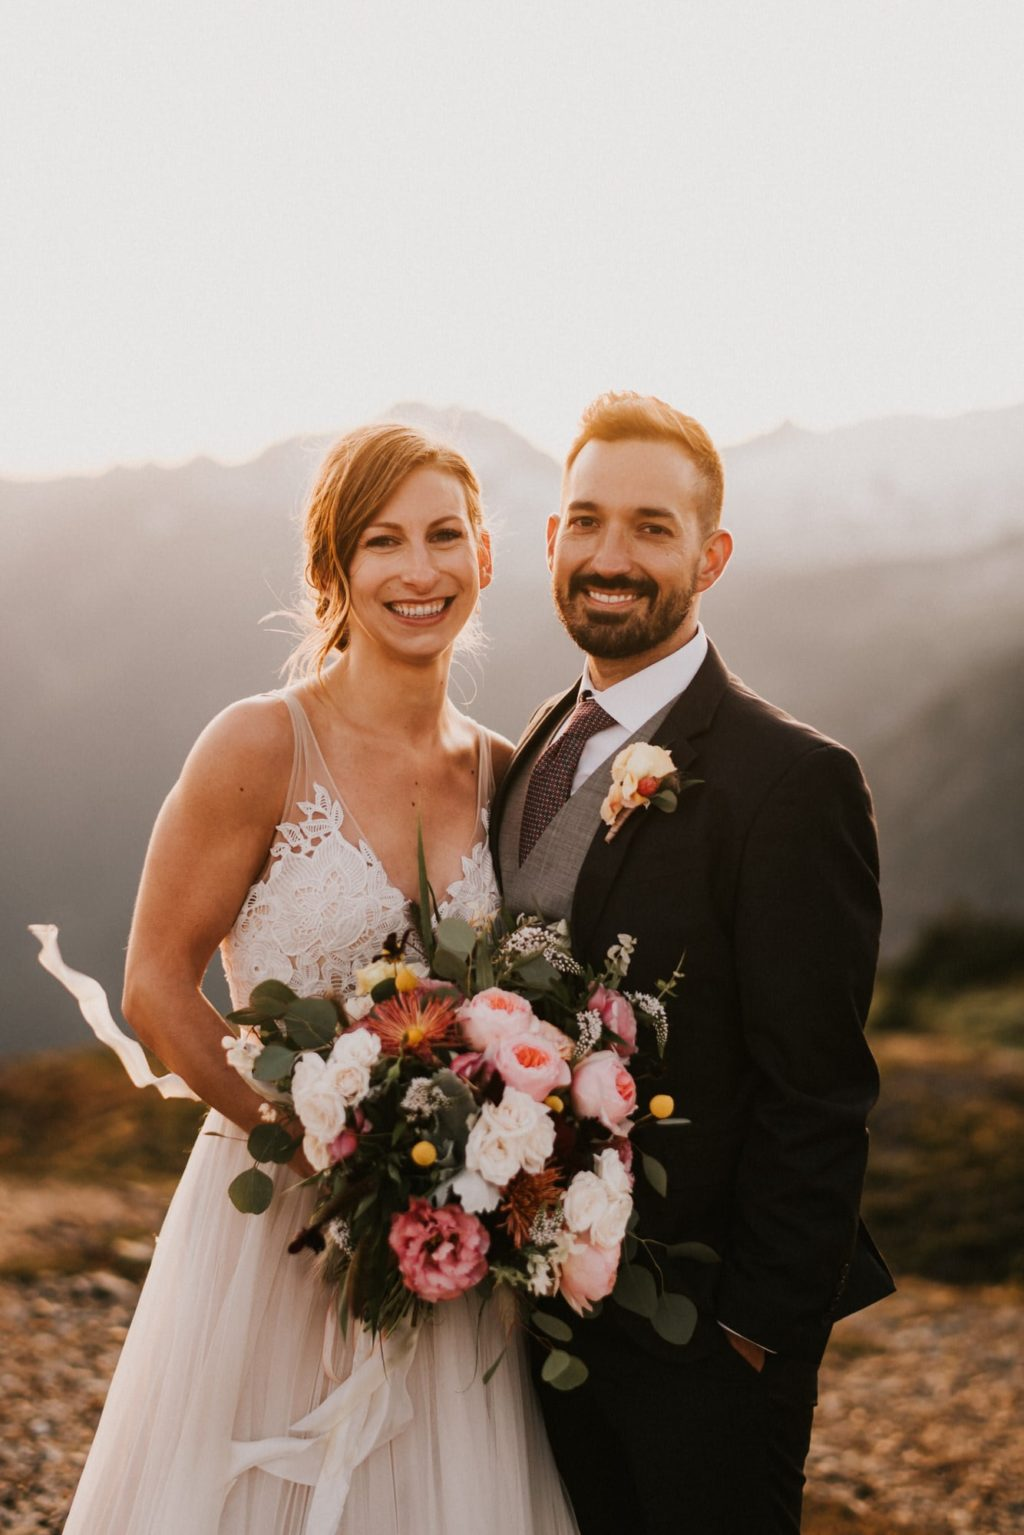 the perfect bouquet for an adventure wedding